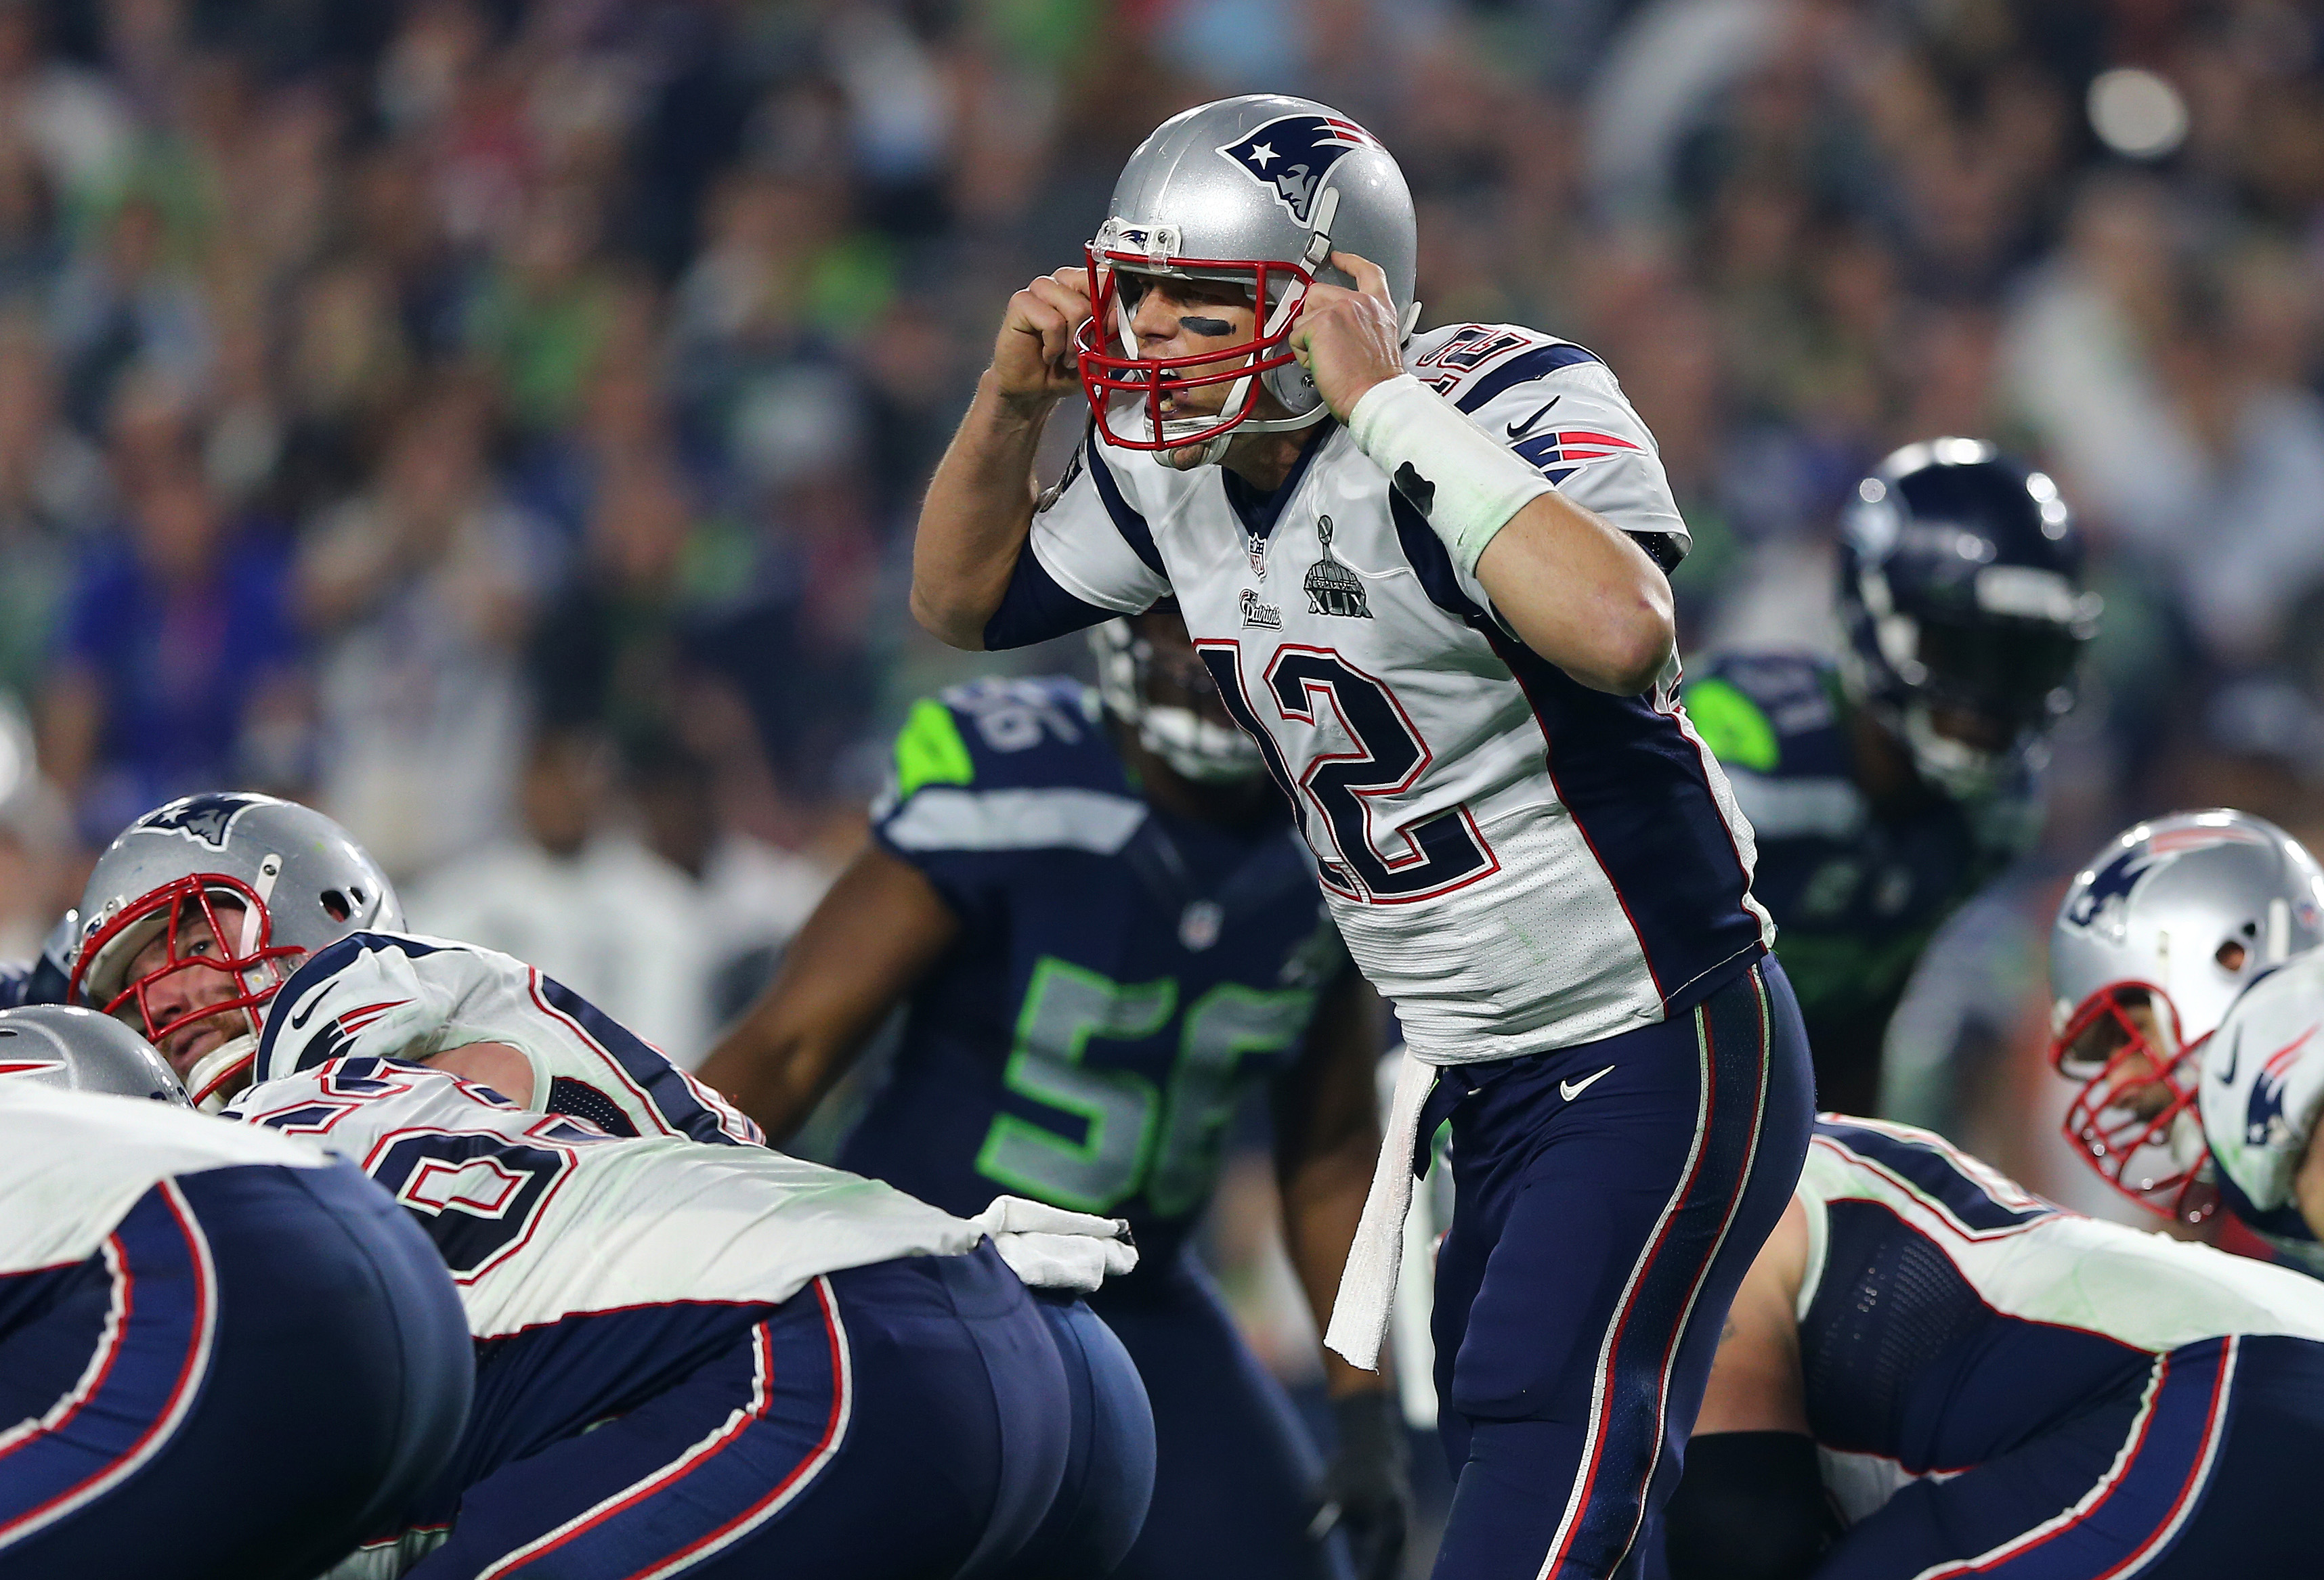 Top 25 Super Bowl Moments Of All Time